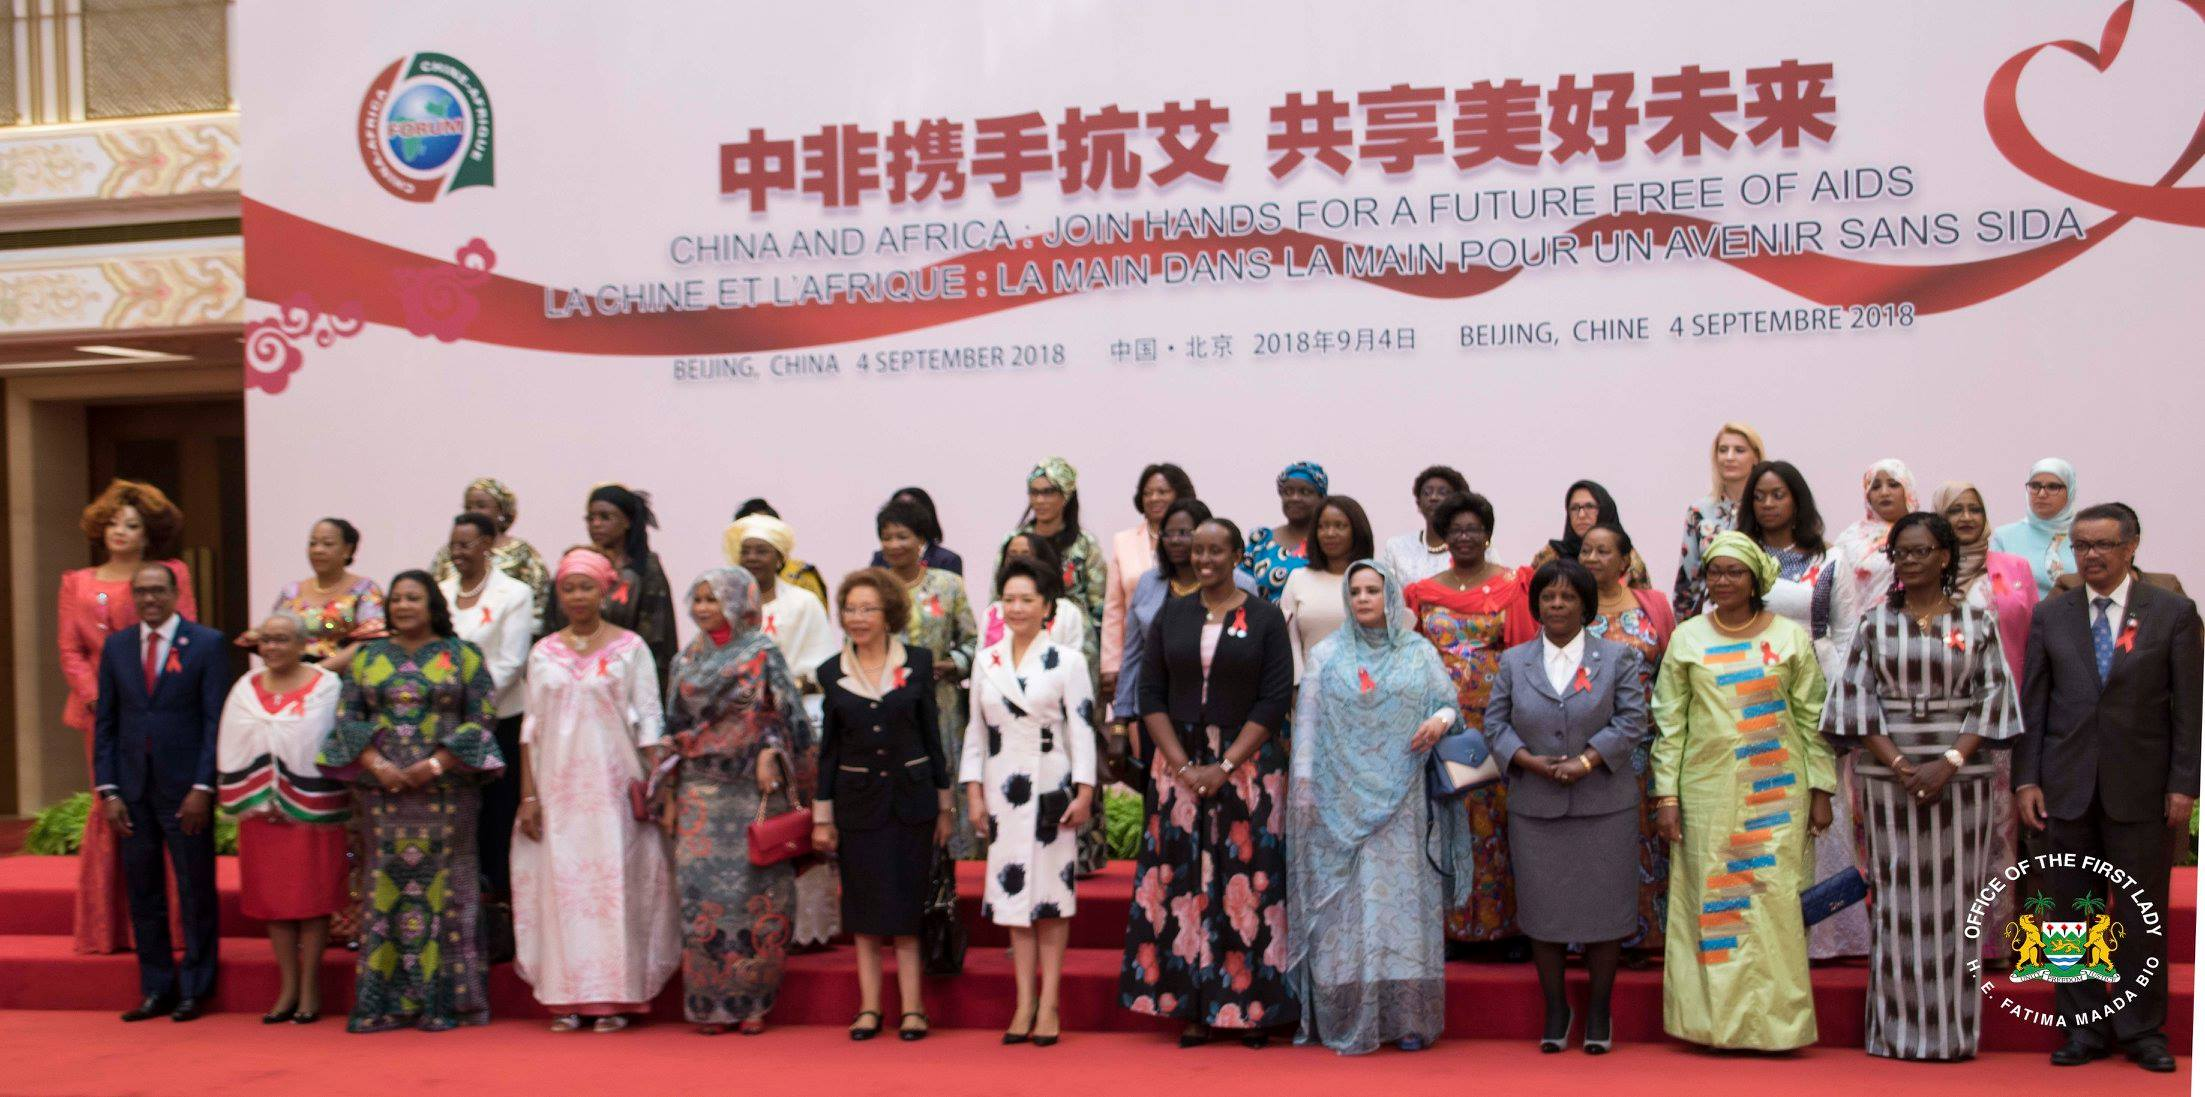 HIV / AIDS prevention and control conference in China